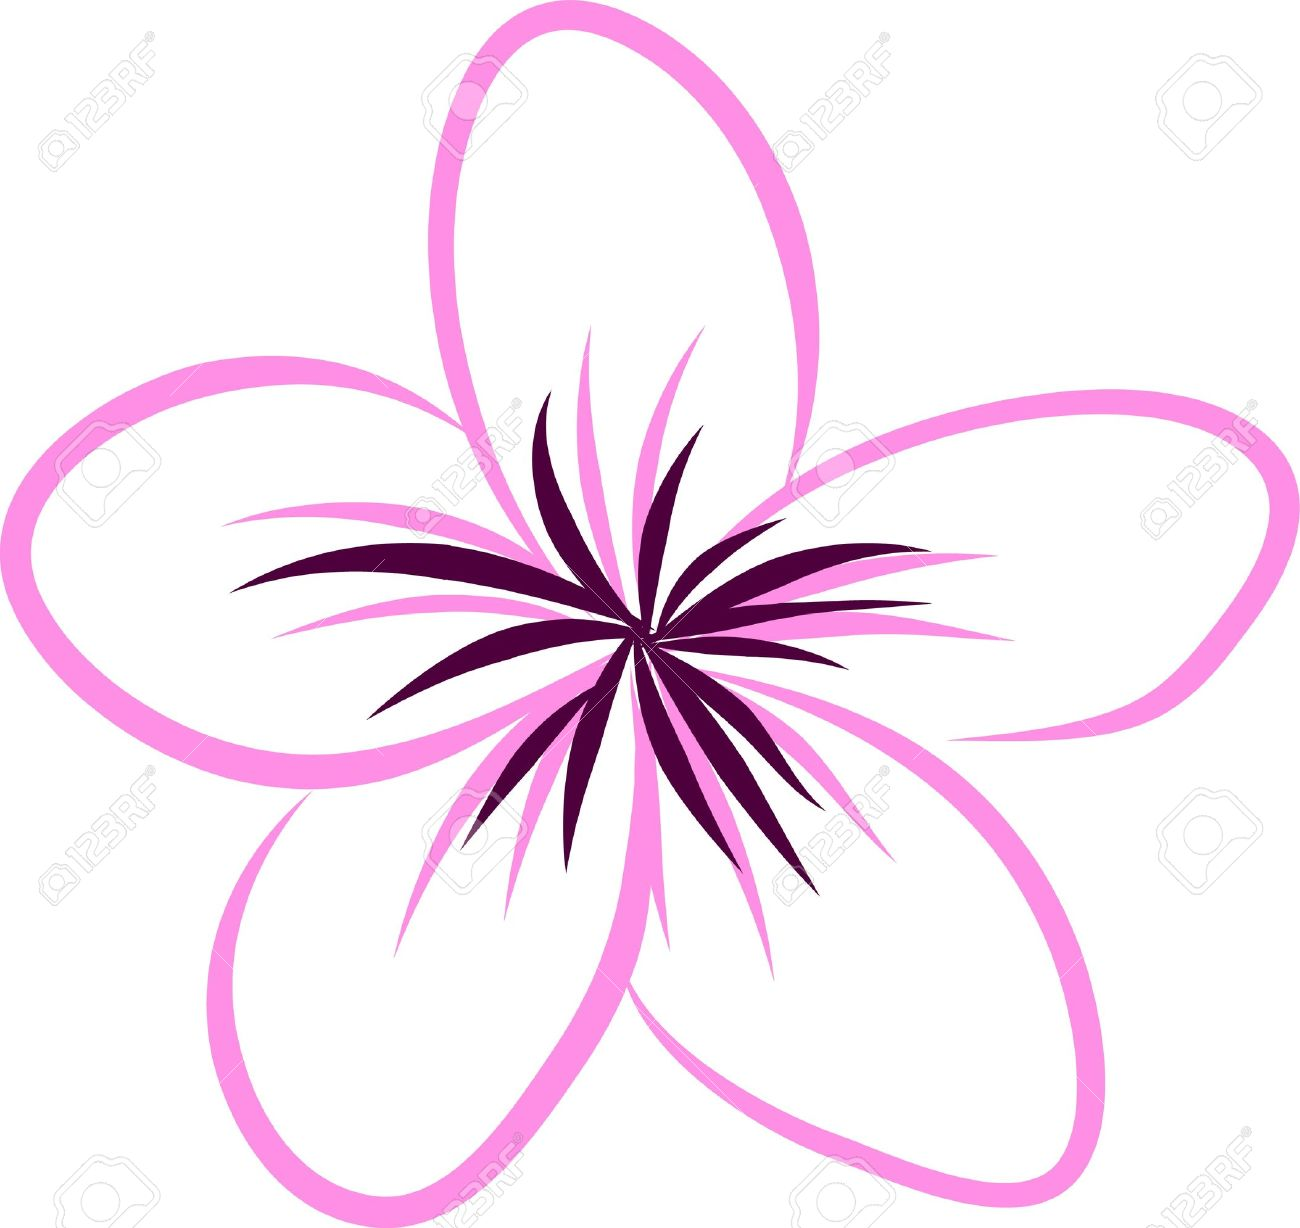 Drawing Tropical Plumeria Flowers Vector Royalty Free Cliparts Vectors And Stock Illustration Image 21424299